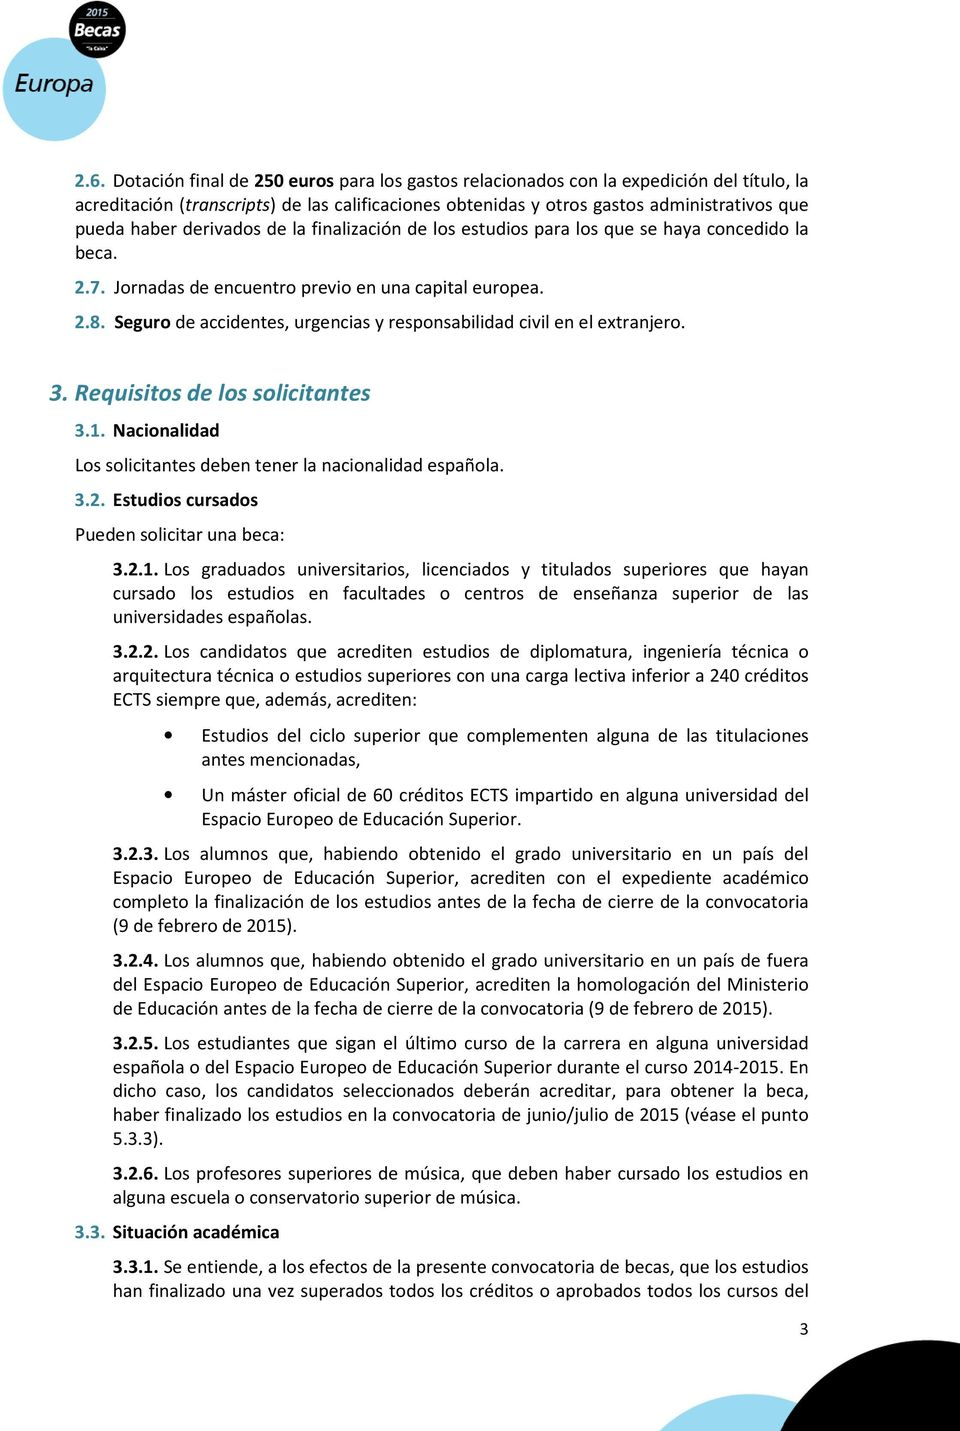 Seguro de accidentes, urgencias y responsabilidad civil en el extranjero. 3. Requisitos de los solicitantes 3.1. Nacionalidad Los solicitantes deben tener la nacionalidad española. 3.2.